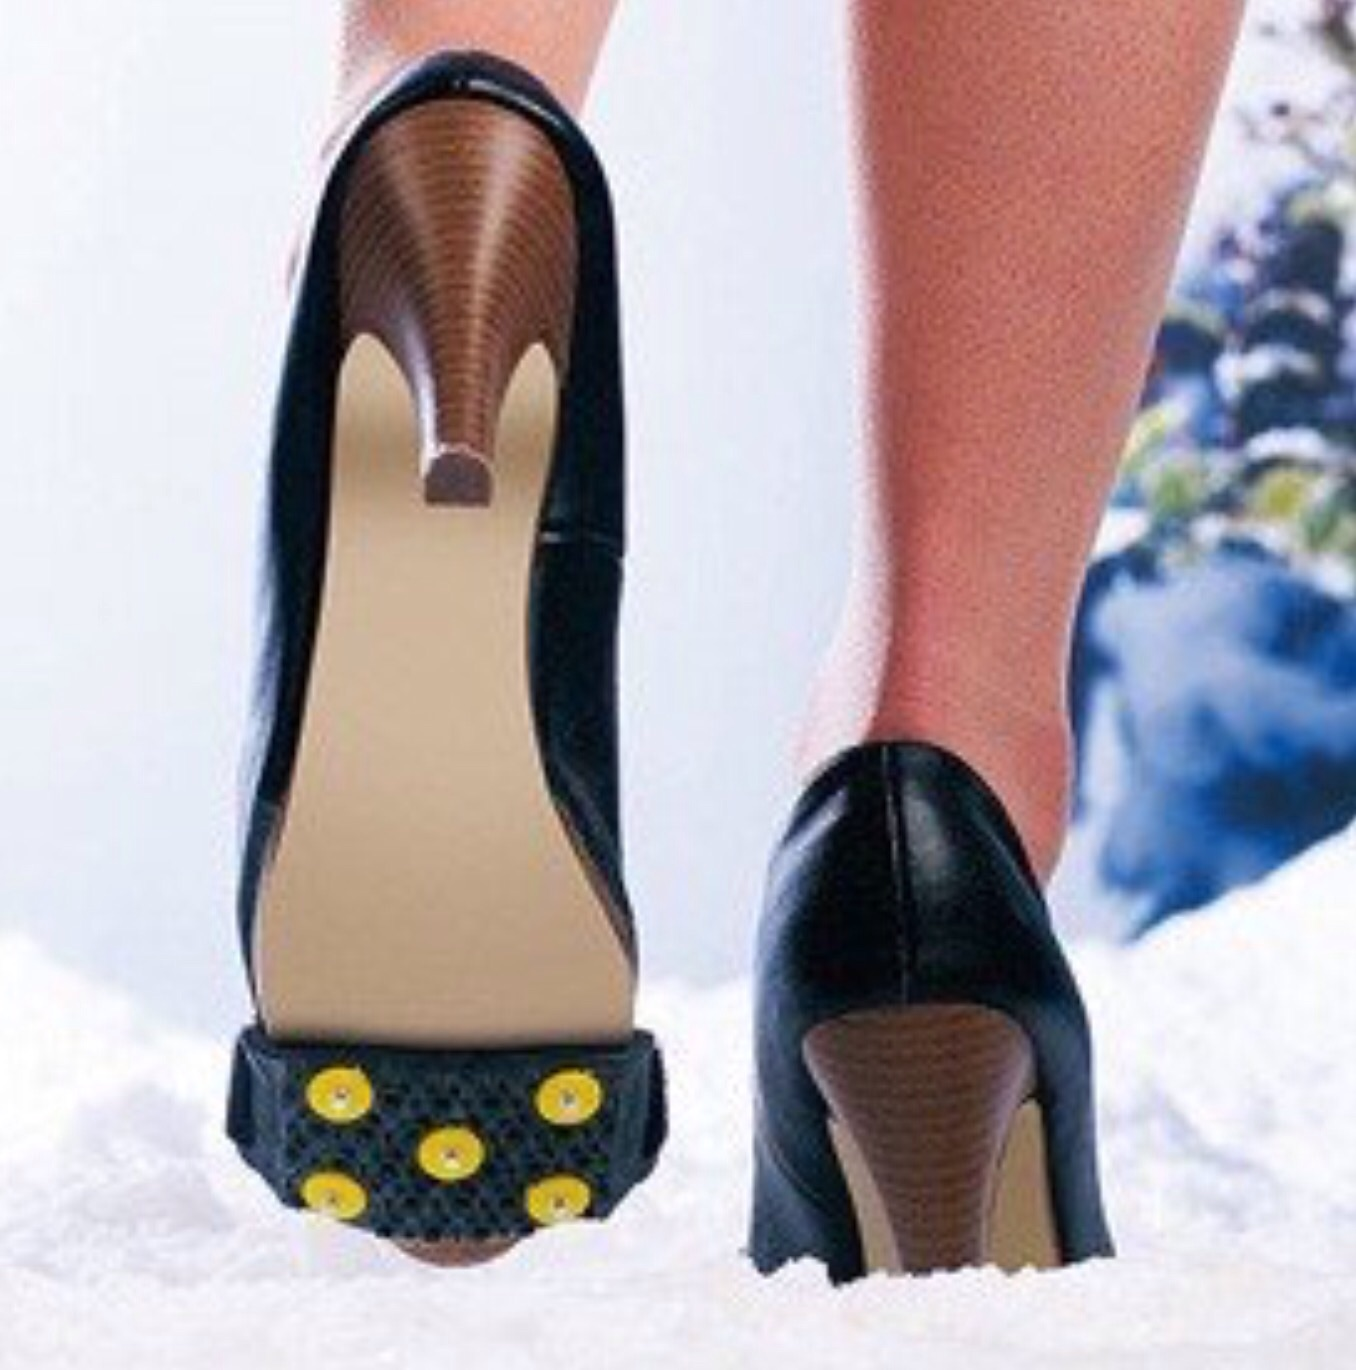 Yaktrax ice grips for high heels